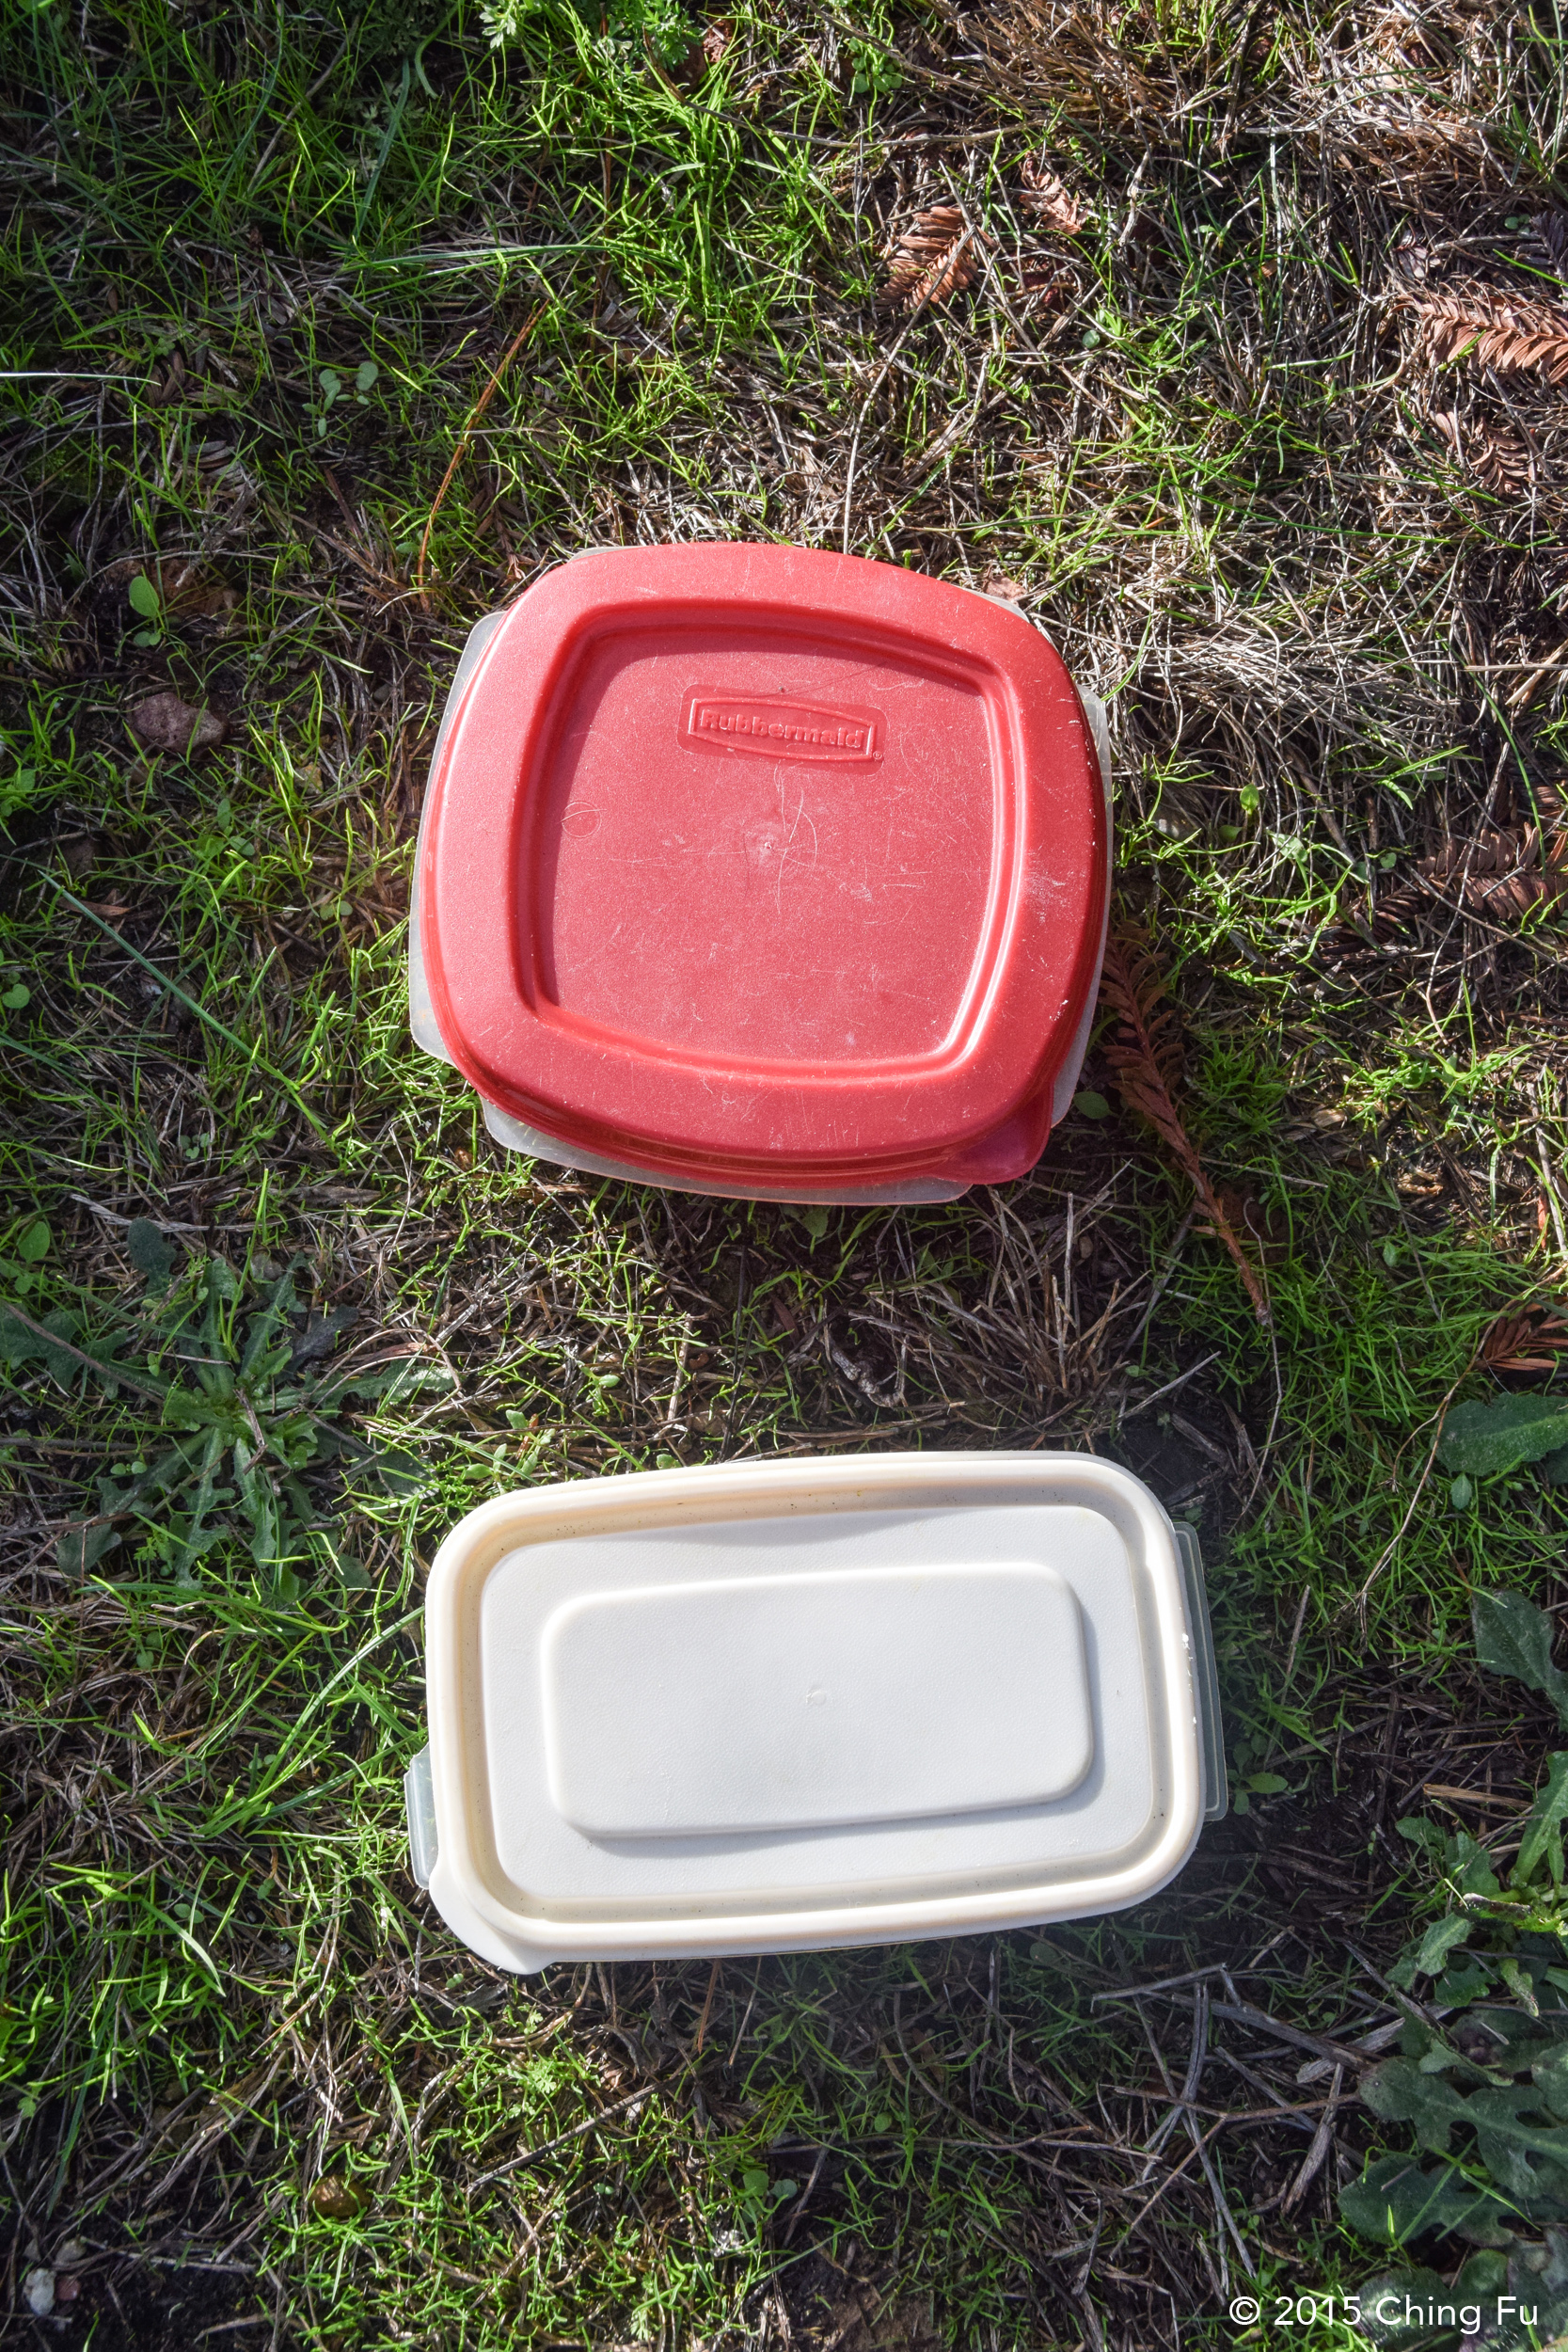 Plastic containers that we keep their dinners in which live inside the truck.